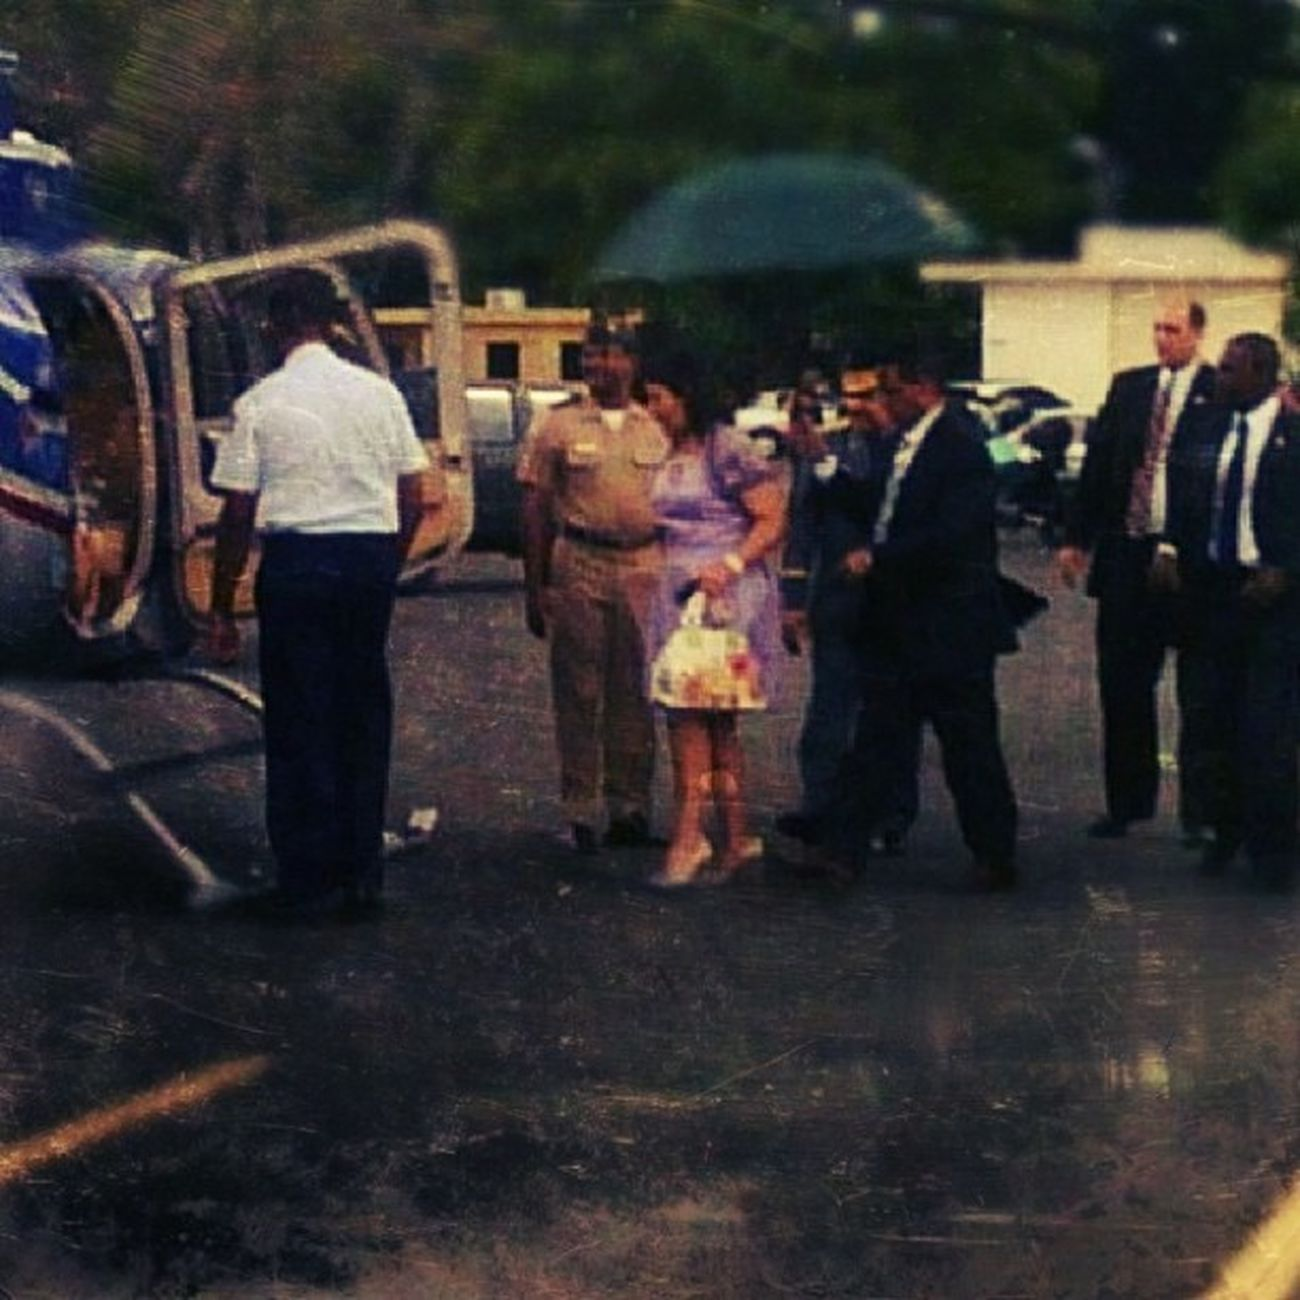 Dominican Republic First Lady @margaritacdf was in town + the Secret Service Iphonegraphy Livetiltshift Picfx Press